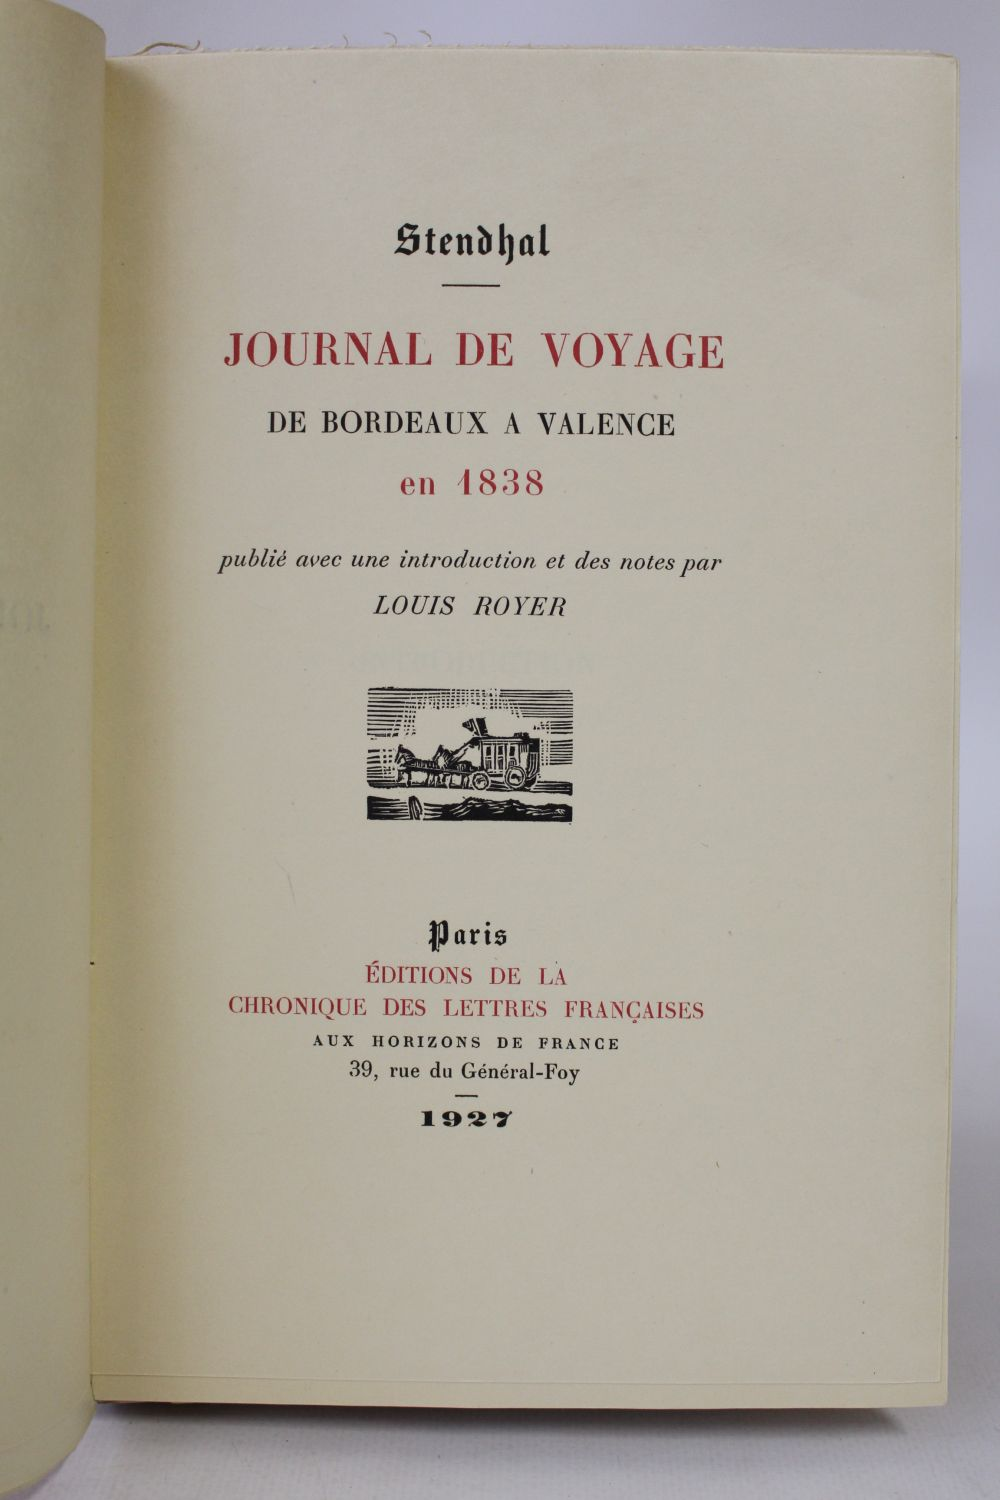 stendhal journal de voyage de bordeaux valence en 1838 edition originale edition. Black Bedroom Furniture Sets. Home Design Ideas